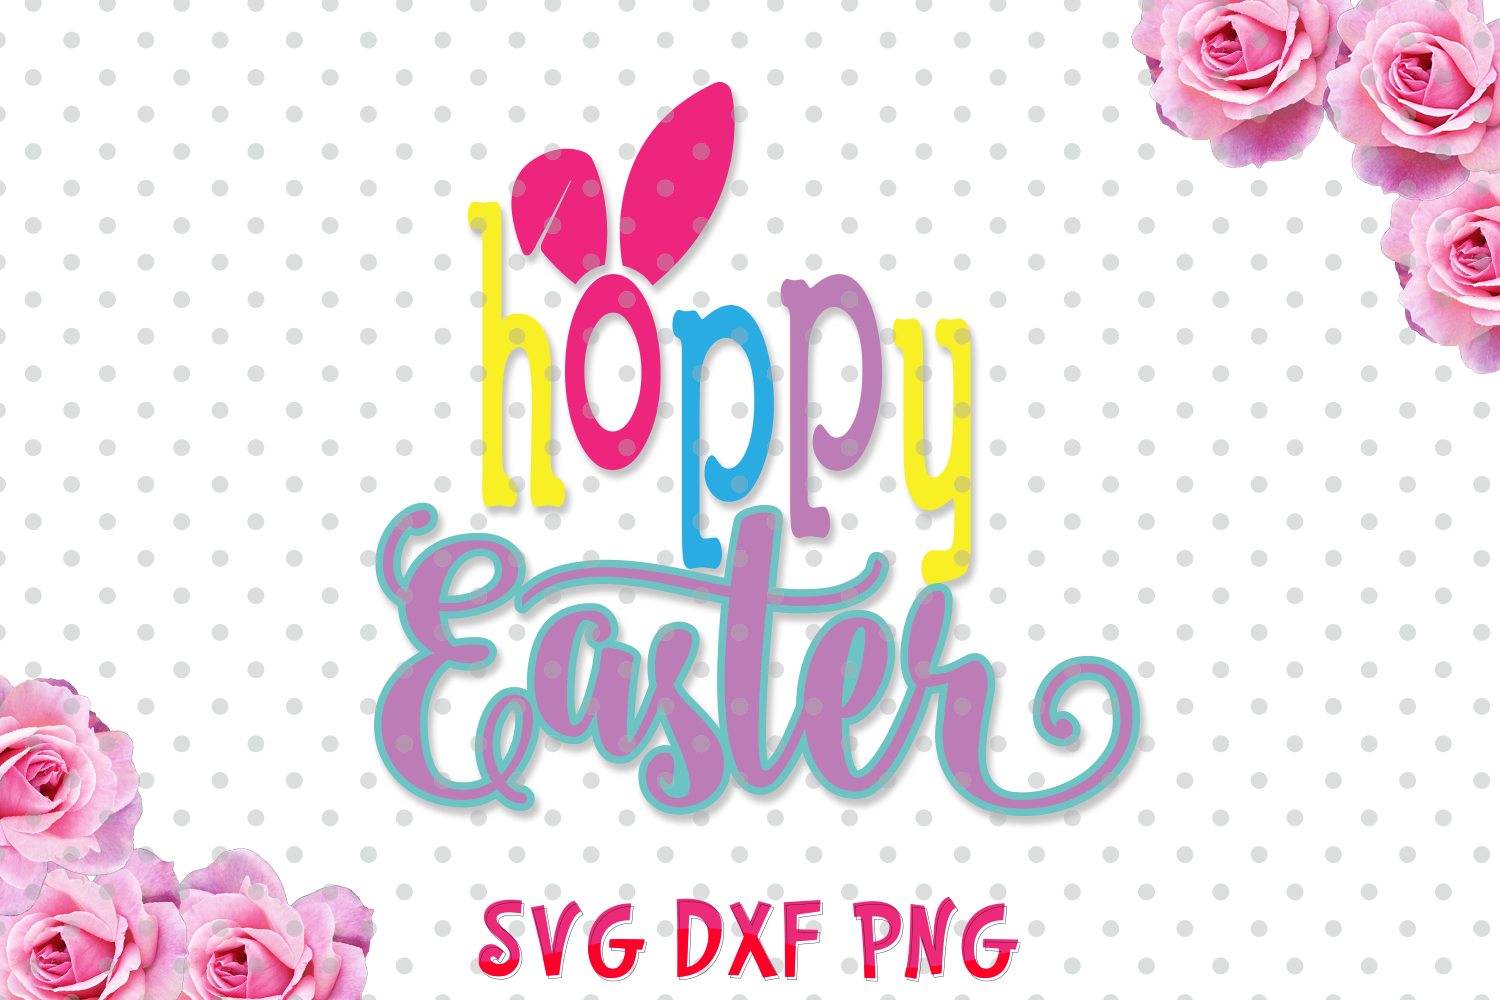 Hoppy Easter Svg cutting file, bunny ears SVG, DXF, Cricut Design Space, Silhouette Studio, Digital Cut Files example image 1